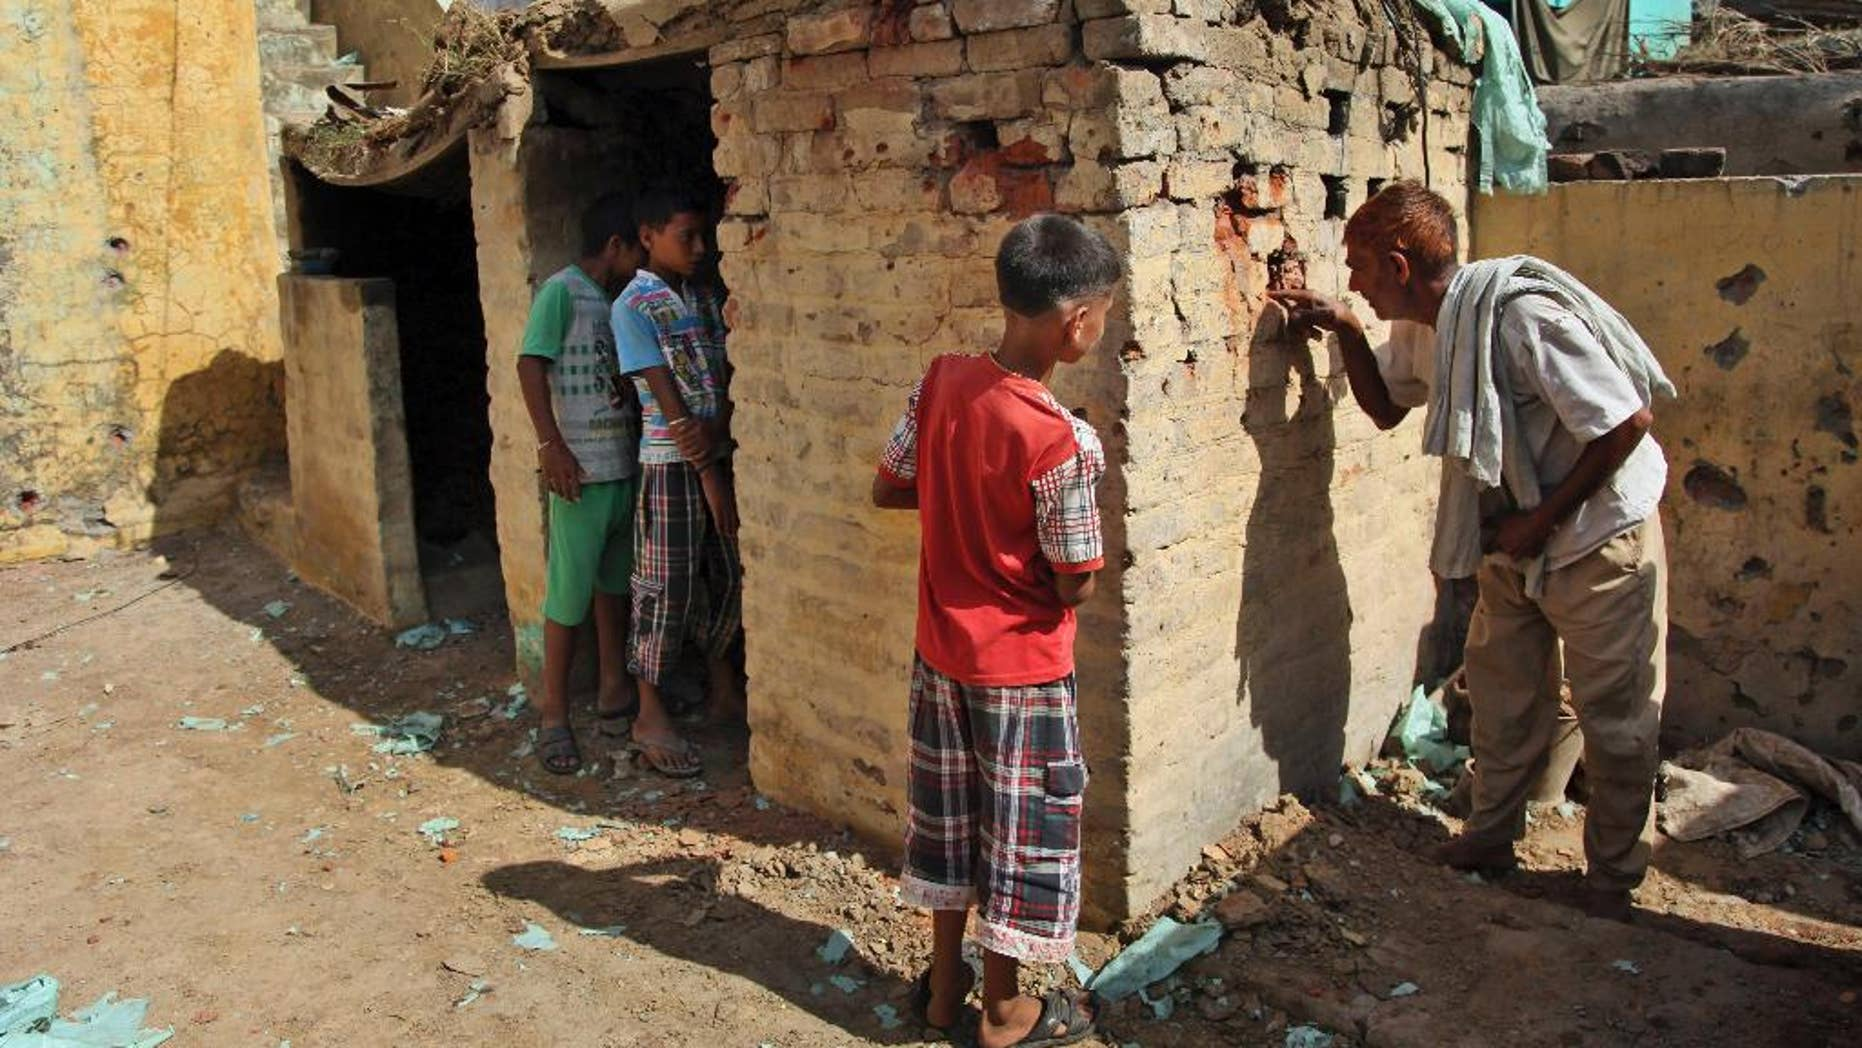 An Indian village man looks at one of the houses damaged in firing between India and Pakistan at the border area of Treava village in Arnia sector, in Jammu, India, Saturday, Oct. 11, 2014. Exchanges of fire are common along the tense and heavily guarded frontier, but this week's flare-up, which left more than 20 people dead, is the most serious violation yet of a 2003 cease-fire agreement. (AP Photo/Channi Anand)